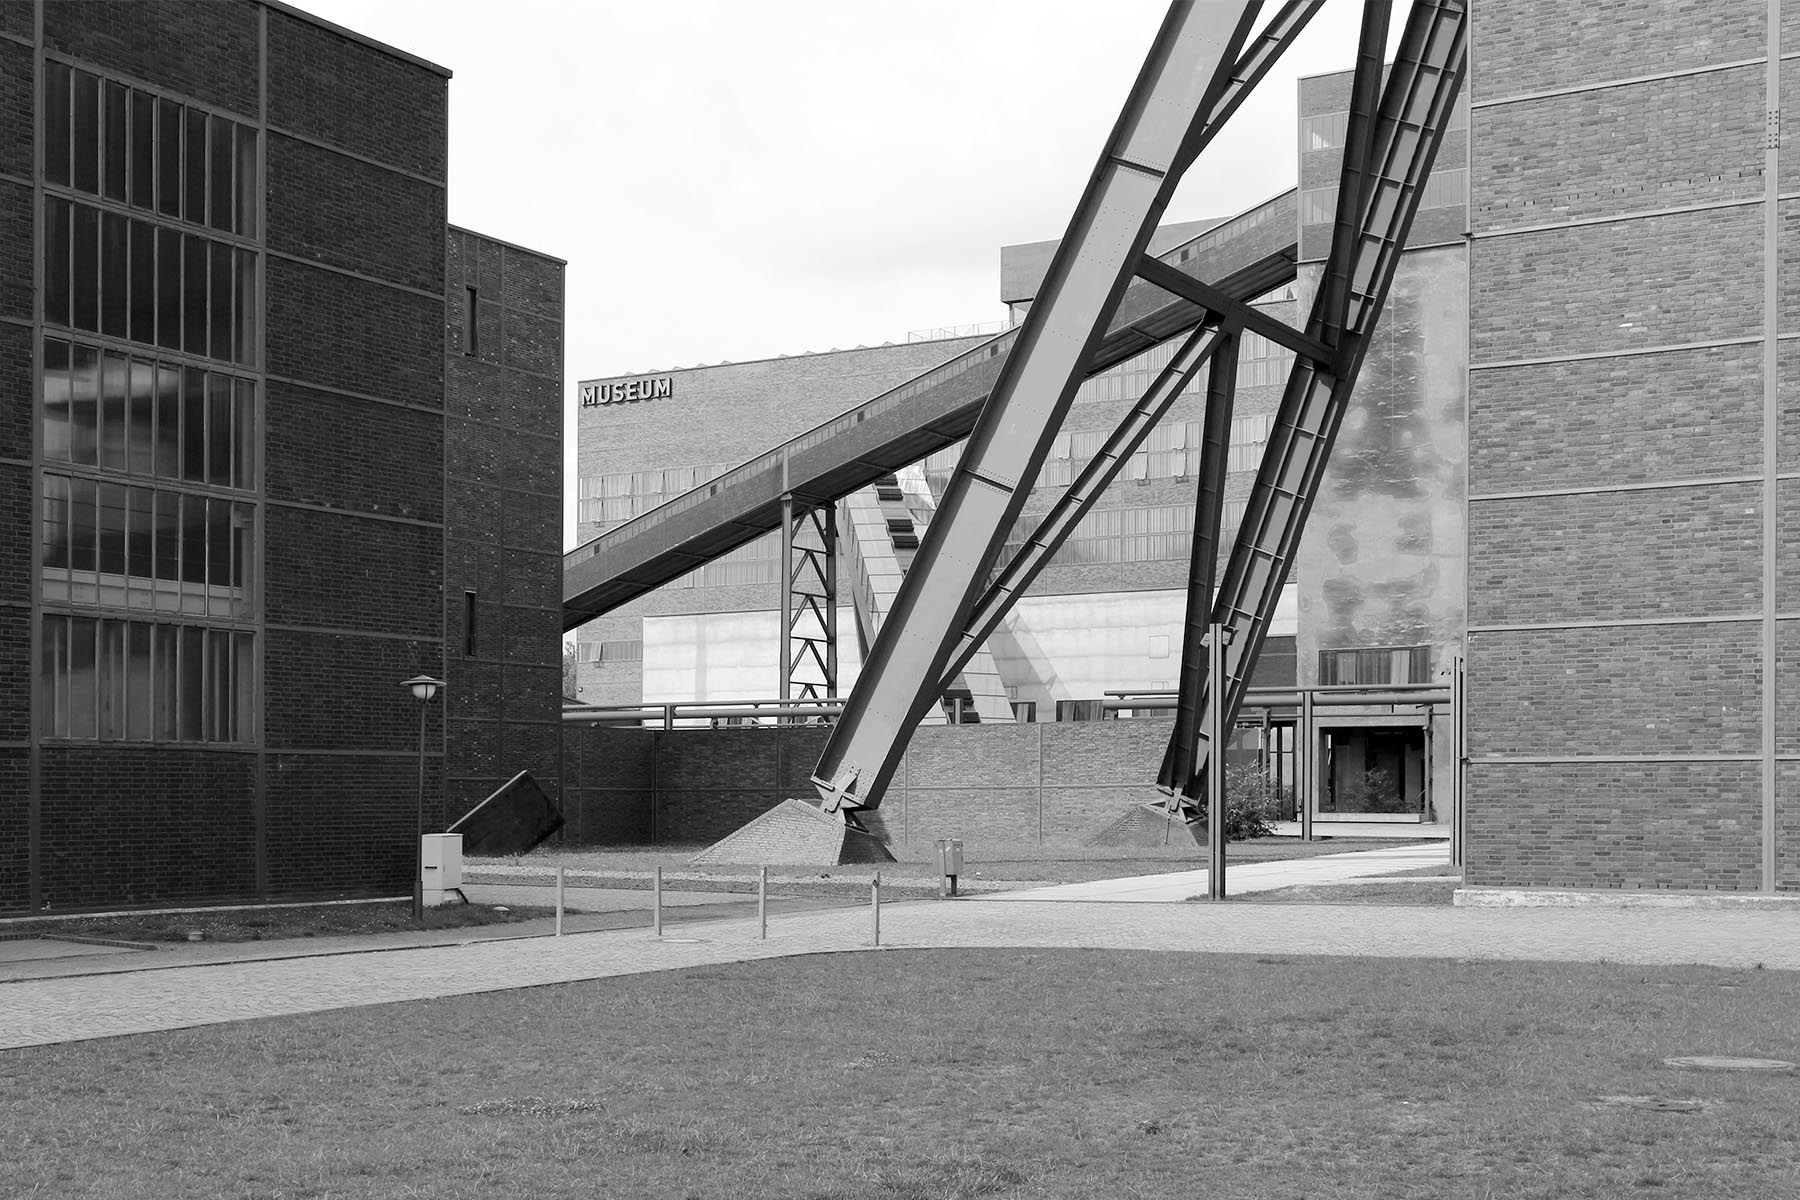 Zeche Zollverein.  The Zollverein is the ultimate symbol of Ruhr mining construction